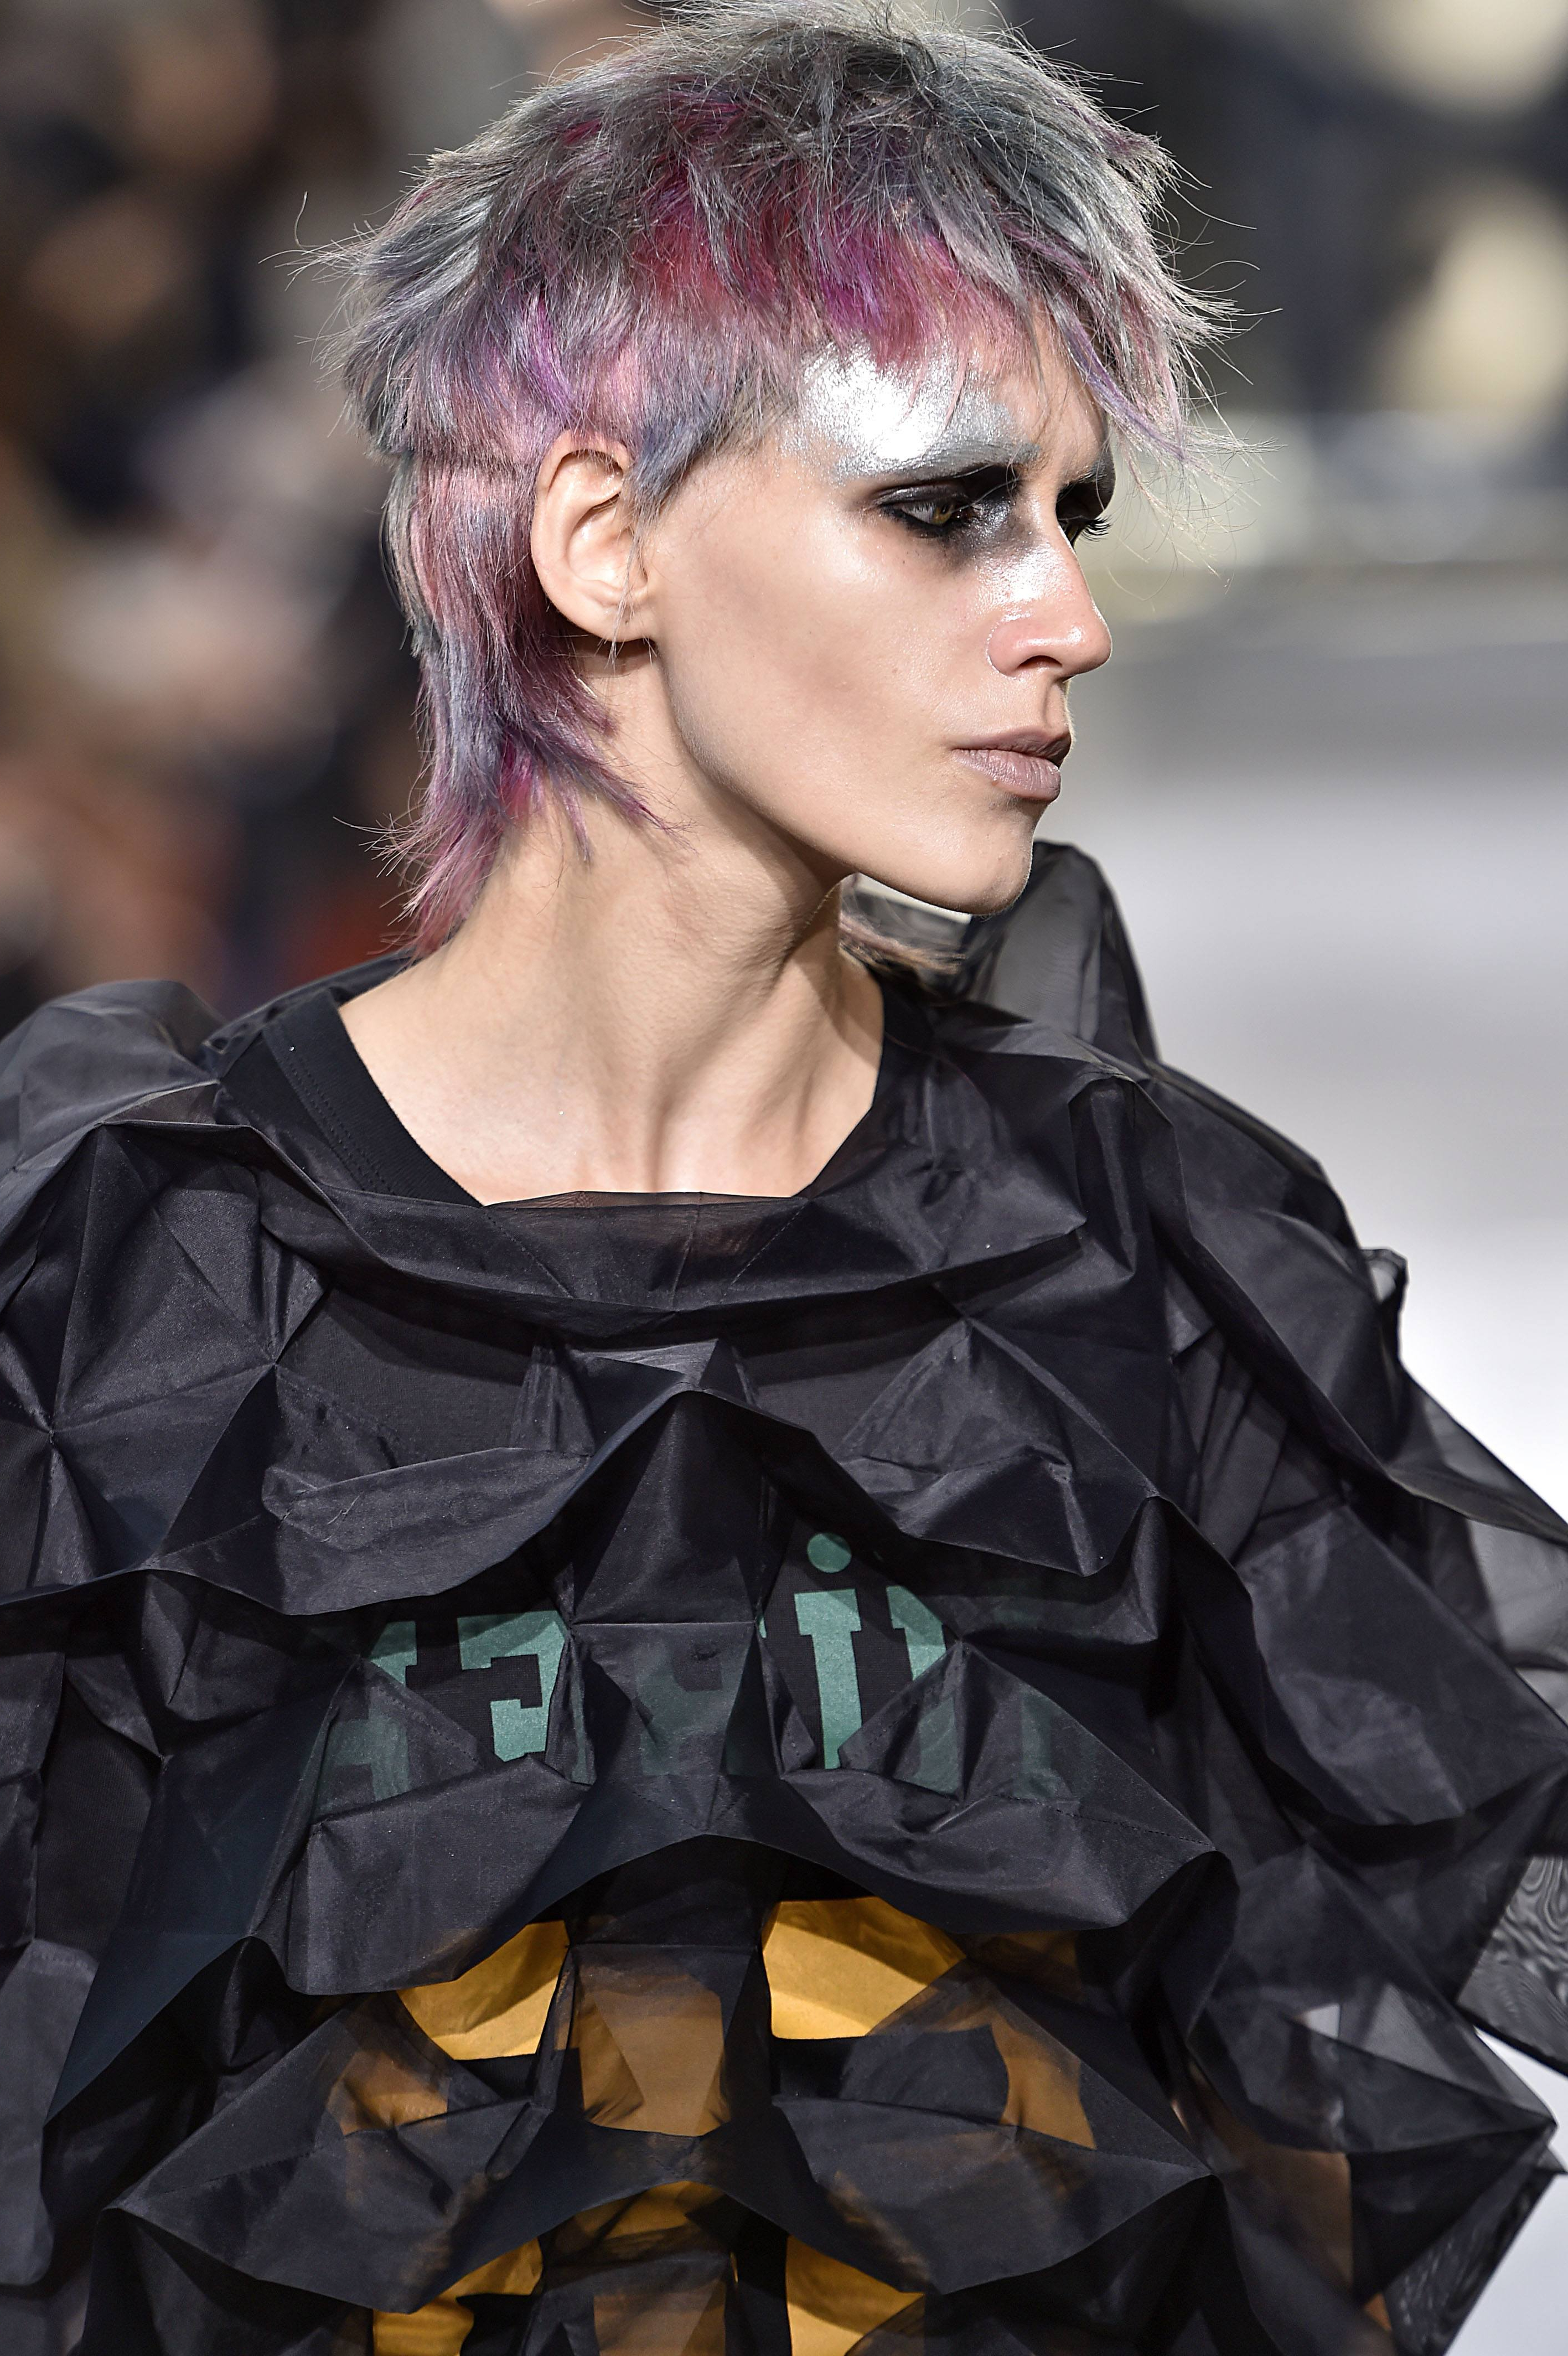 9 Short Edgy Haircuts To Inspire Your New Look (Plus A Tutorial!) Inside Edgy Short Haircuts (View 8 of 25)